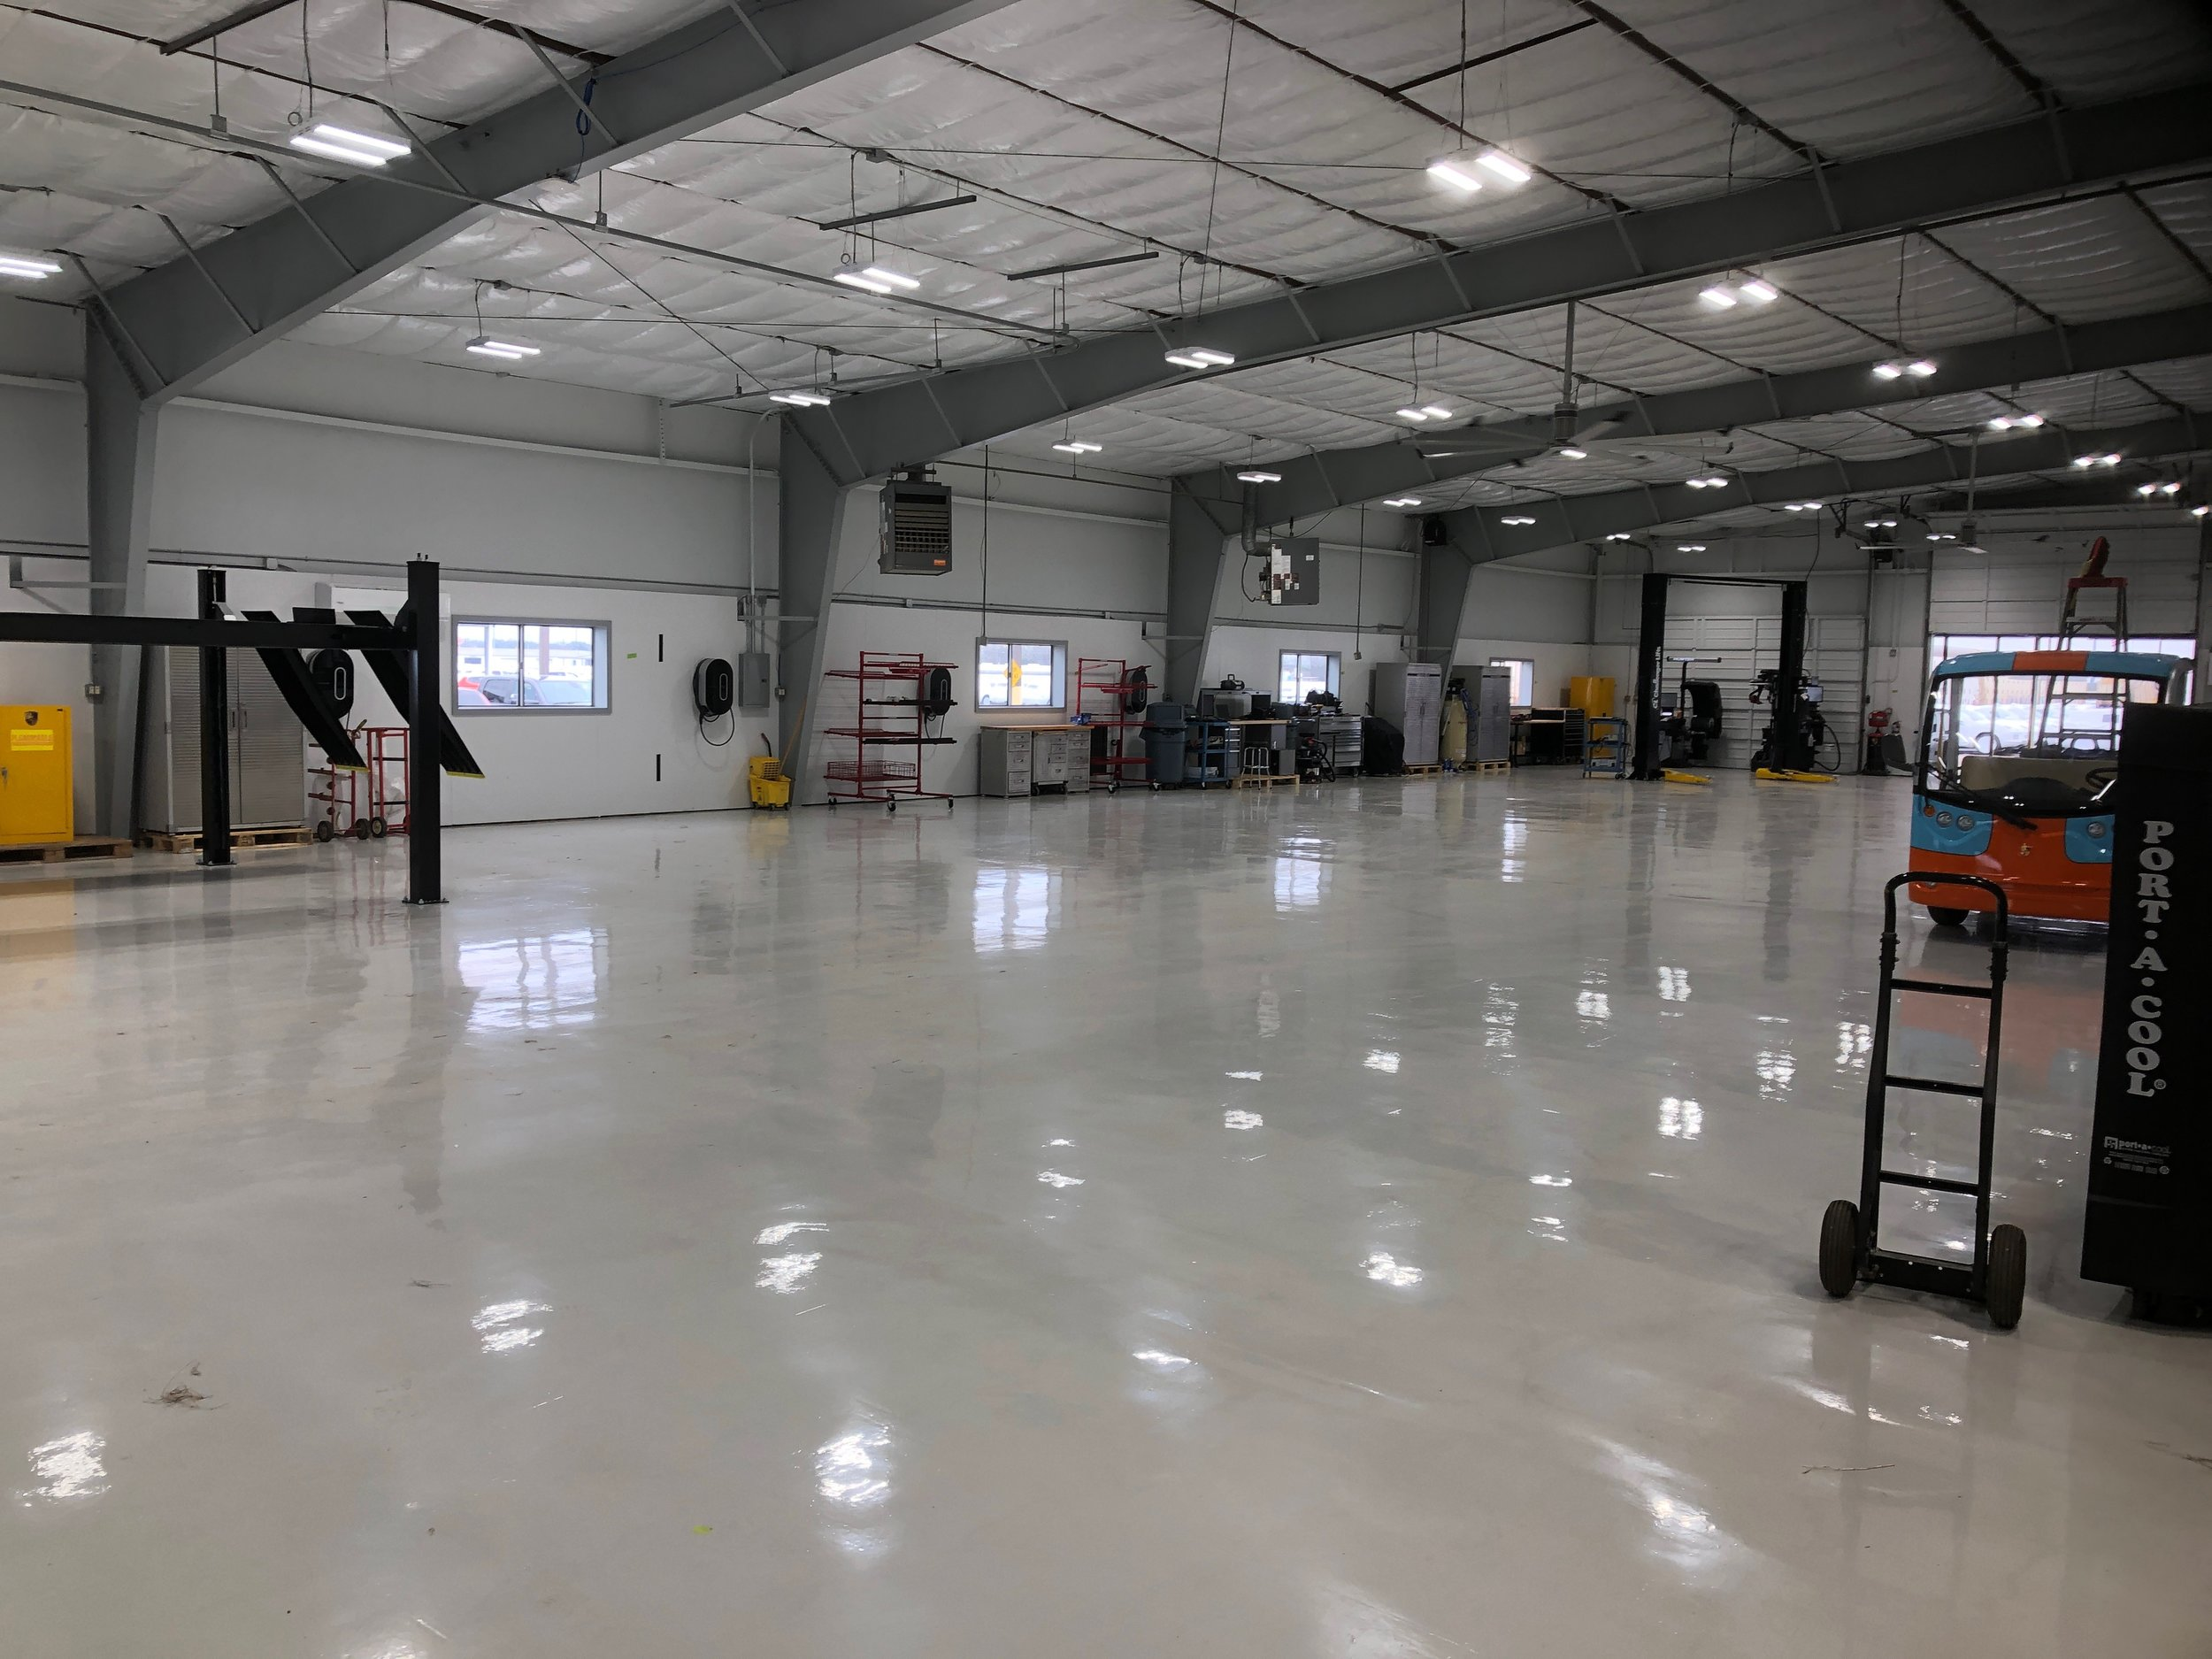 "This was a complete Metal building renovation performed by Metalguard; New floor coating, walls and columns painted, new lighting system, 8"" insulation, R-30, retro-installed insulation into the ceiling in this metal building. It is beautiful. Completed January 2019. This is helping to keep the building cool"